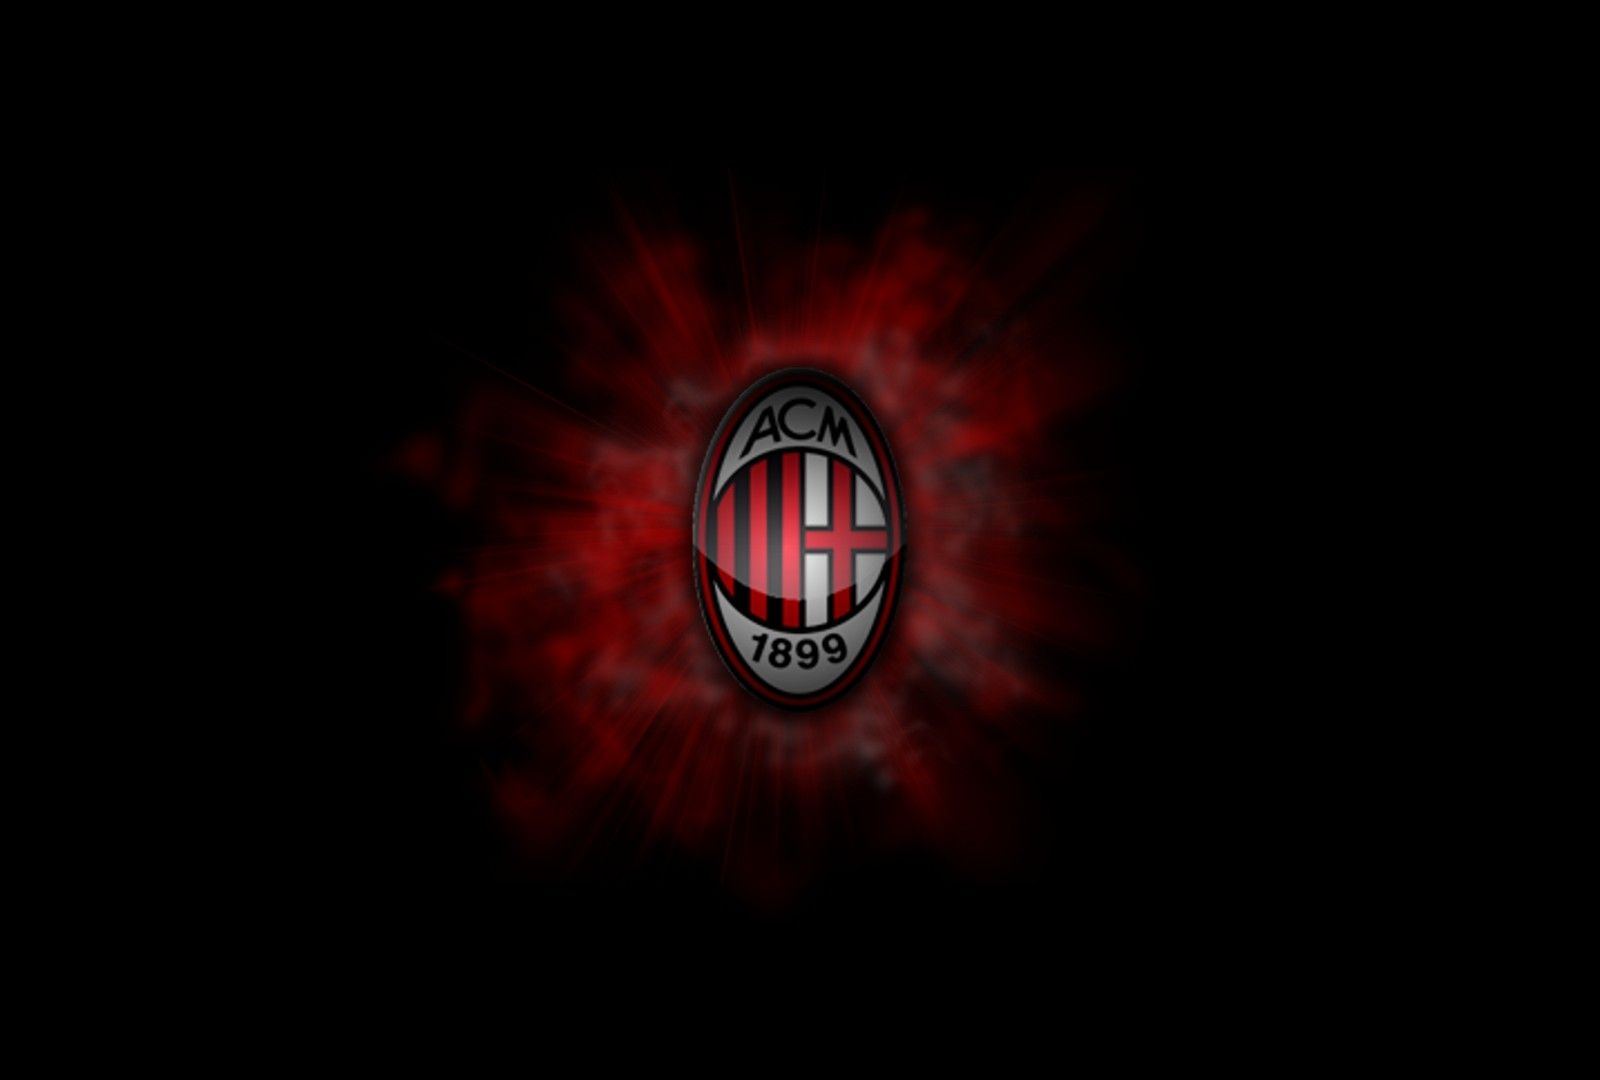 Pin By Wallpaper Soccer On Soccer Player Wallpapers Milan Wallpaper Milan Football Ac Milan